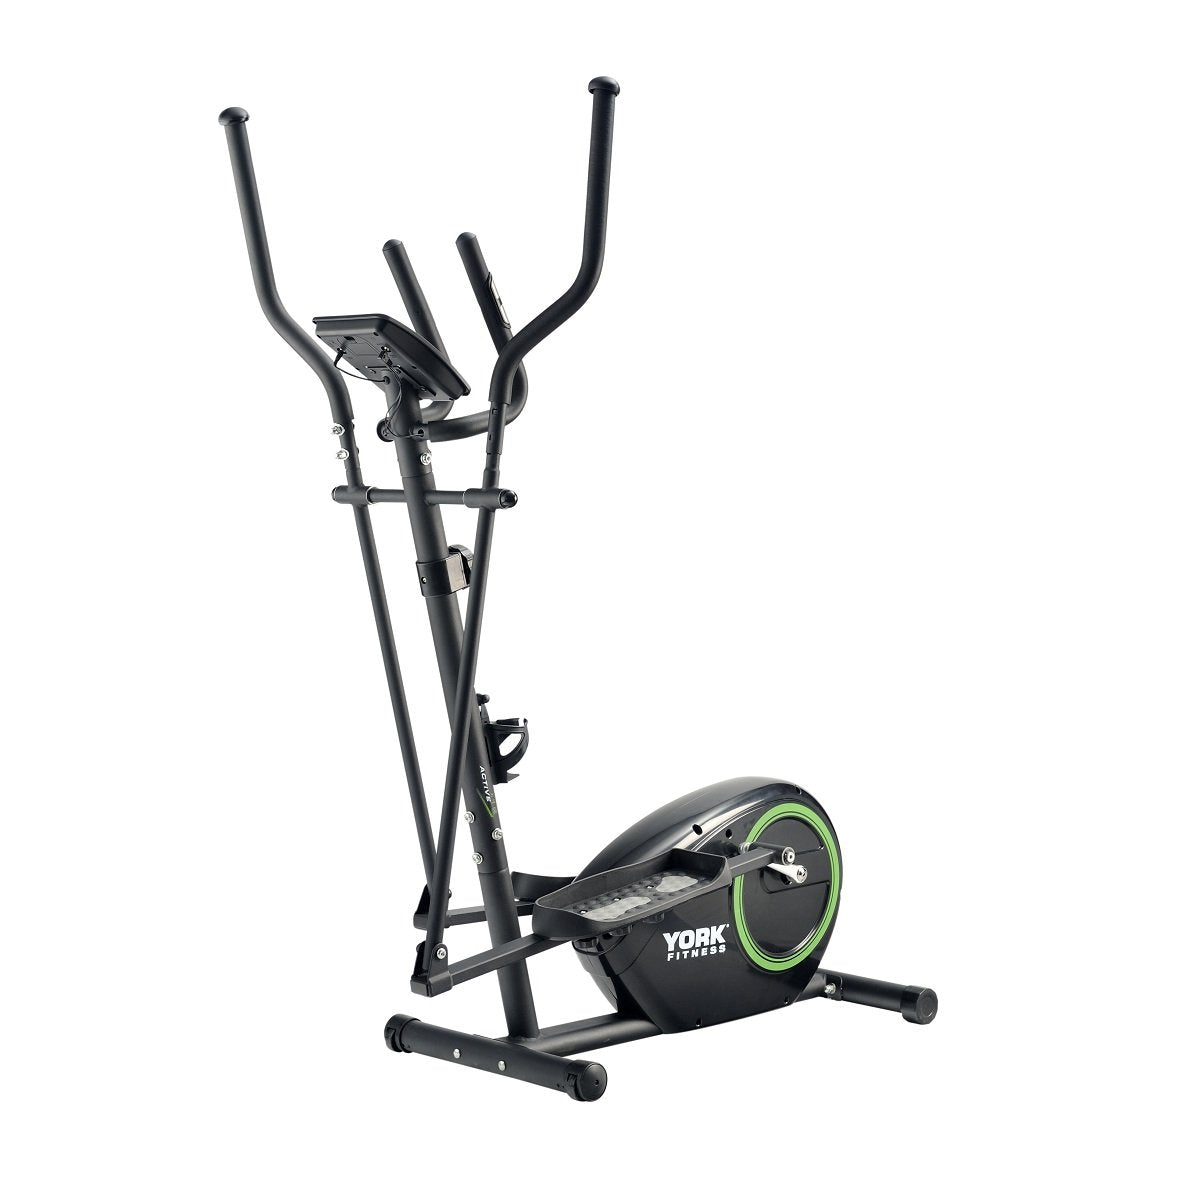 York fitness cross trainer manual